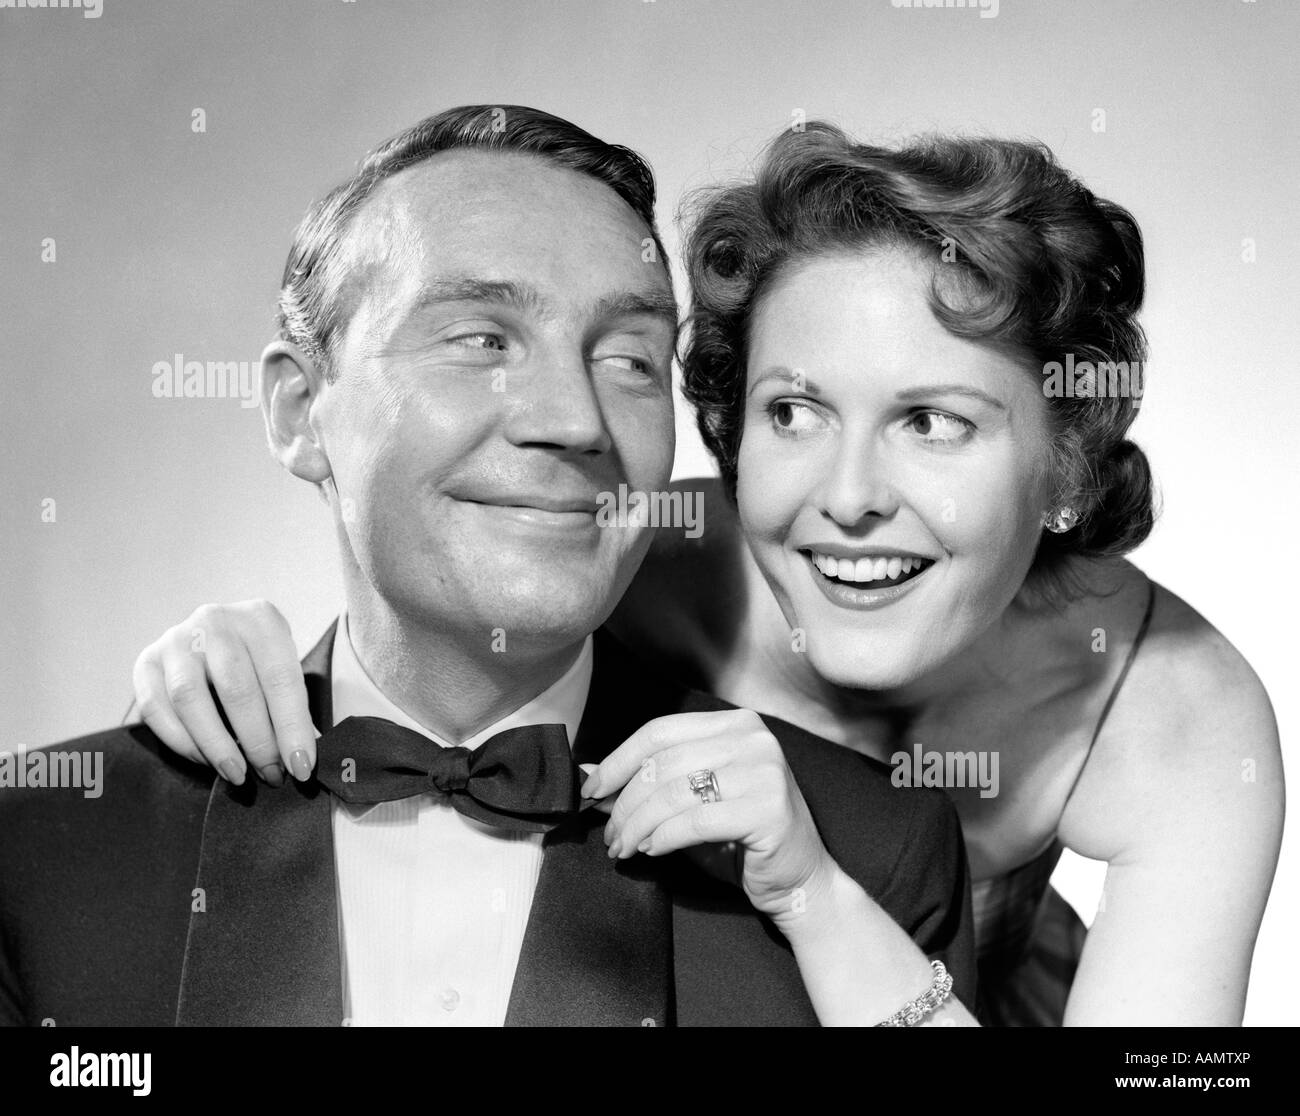 1950s 1960s SMILING COUPLE DRESSED IN FORMAL EVENING ATTIRE WOMAN PULLING ON MAN'S BOW TIE - Stock Image